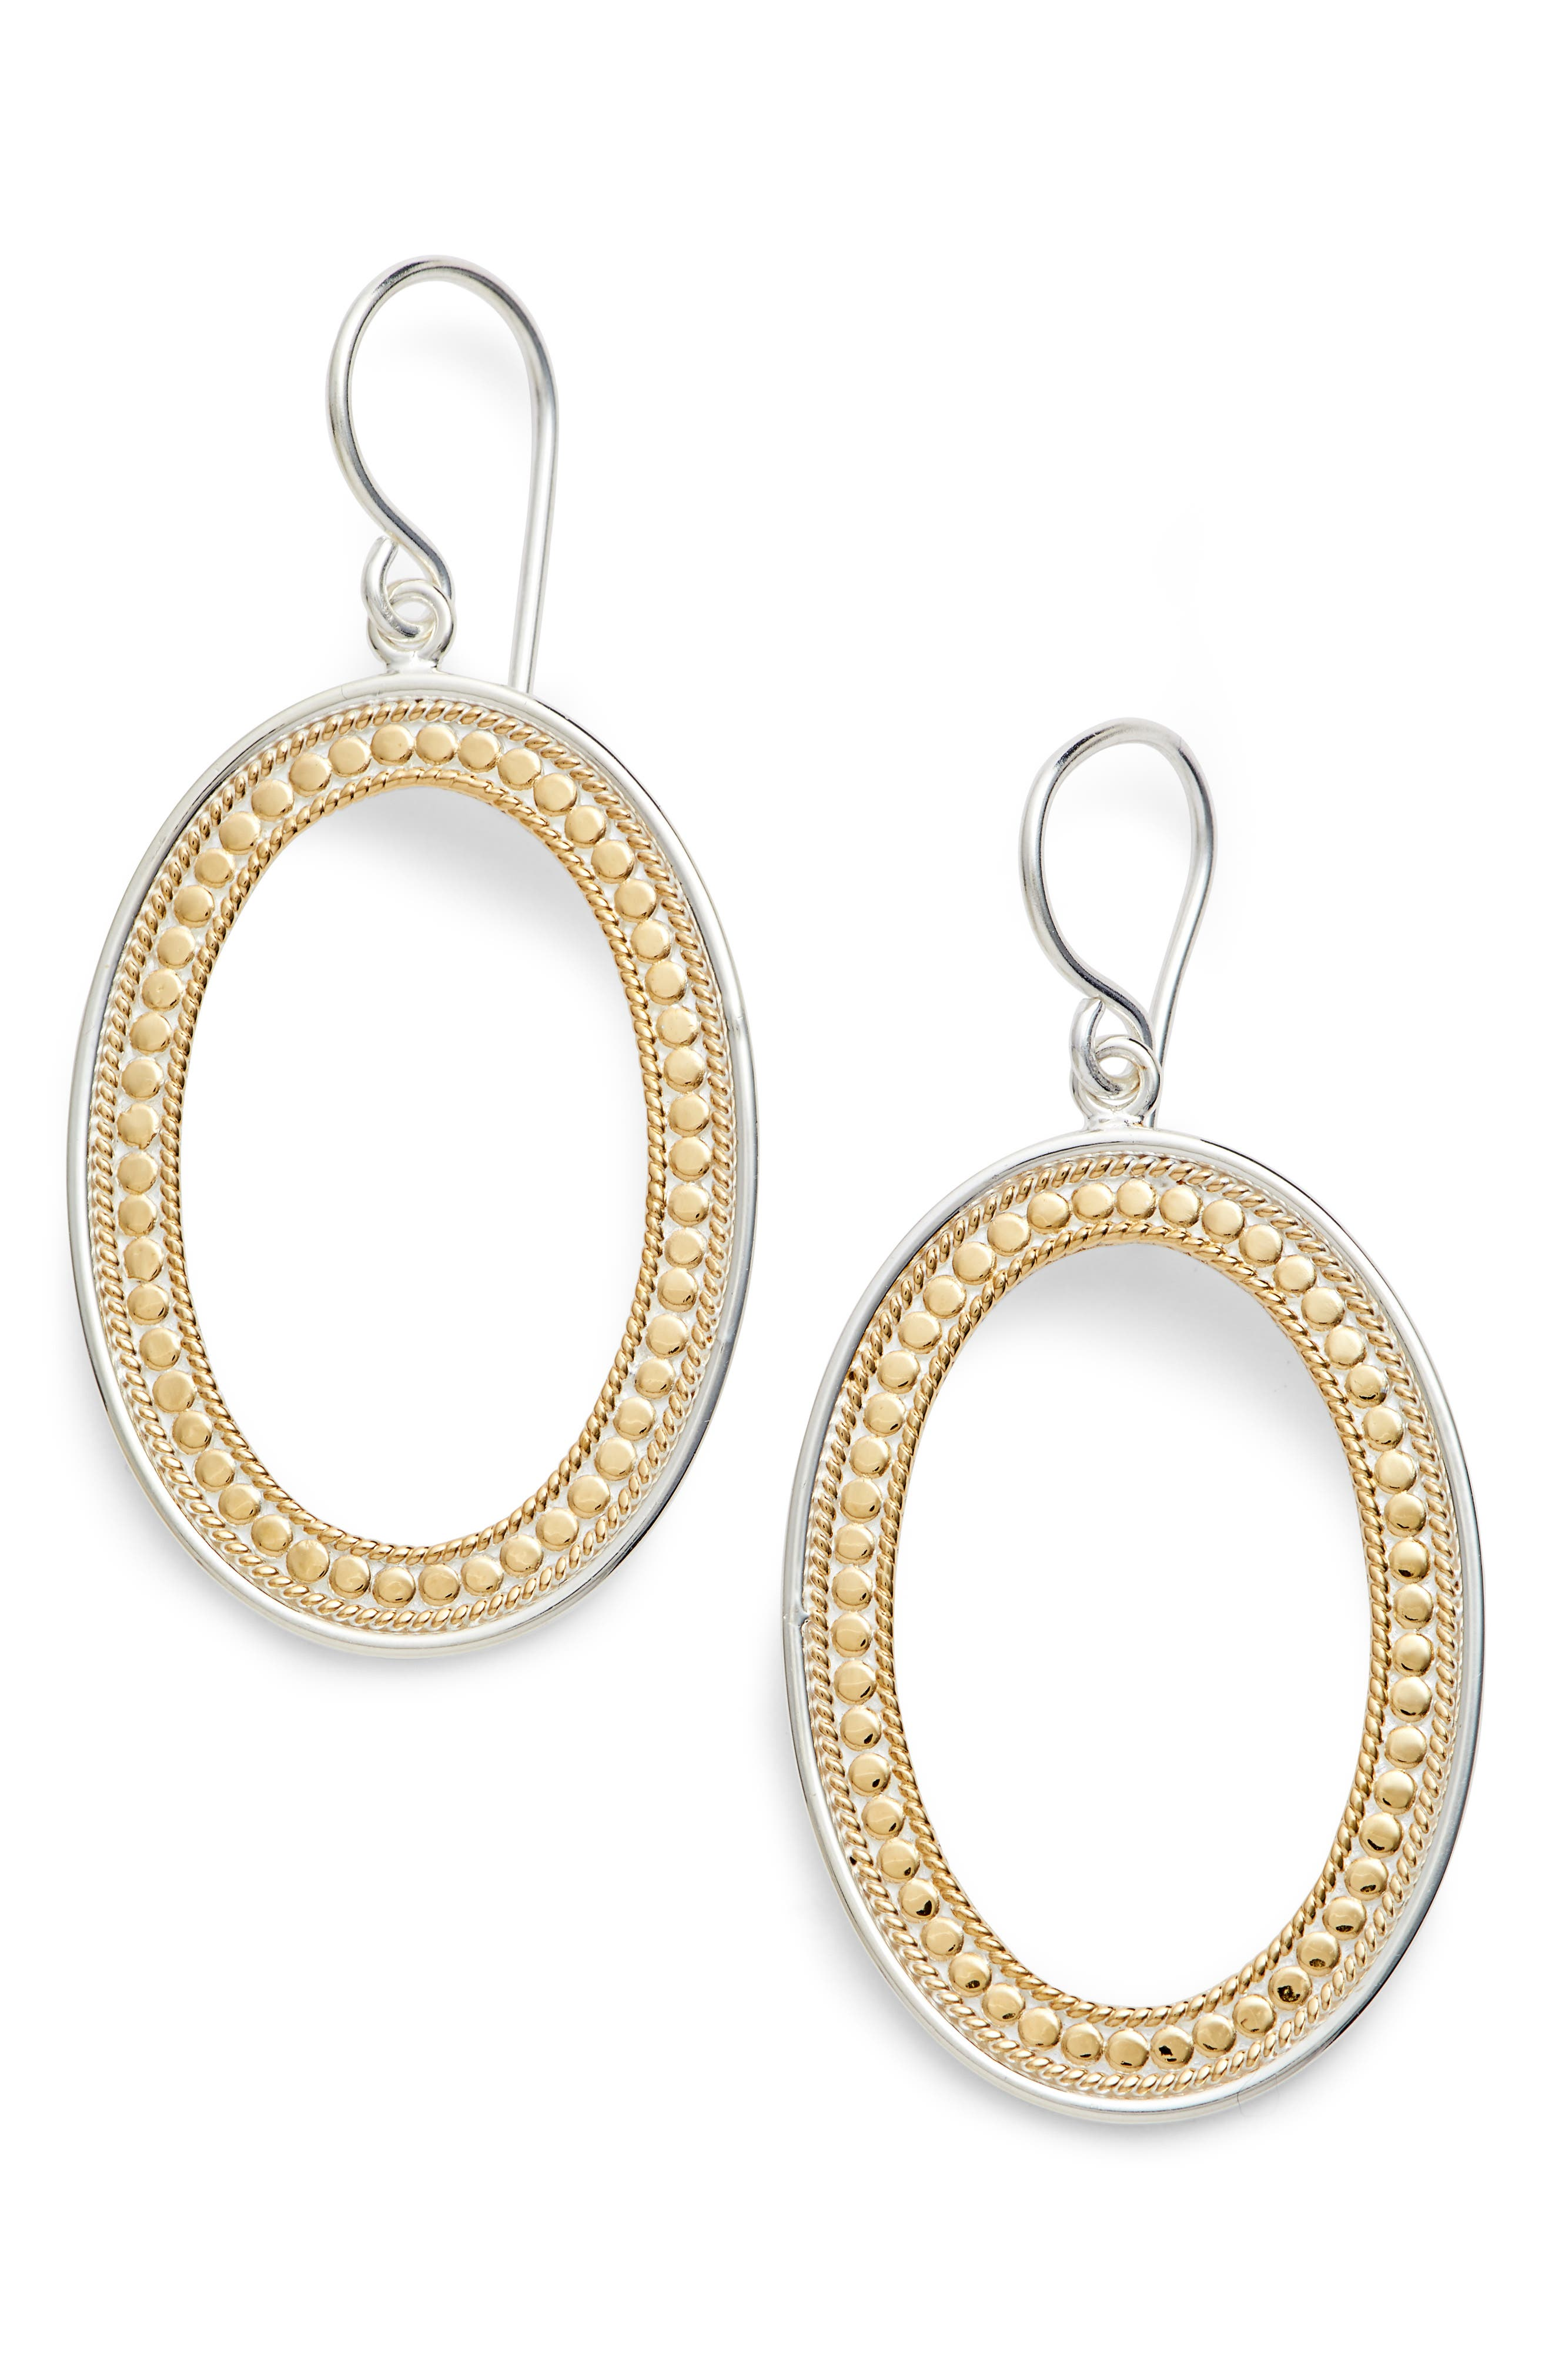 ANNA BECK Large Open Oval Drop Earrings, Main, color, 711